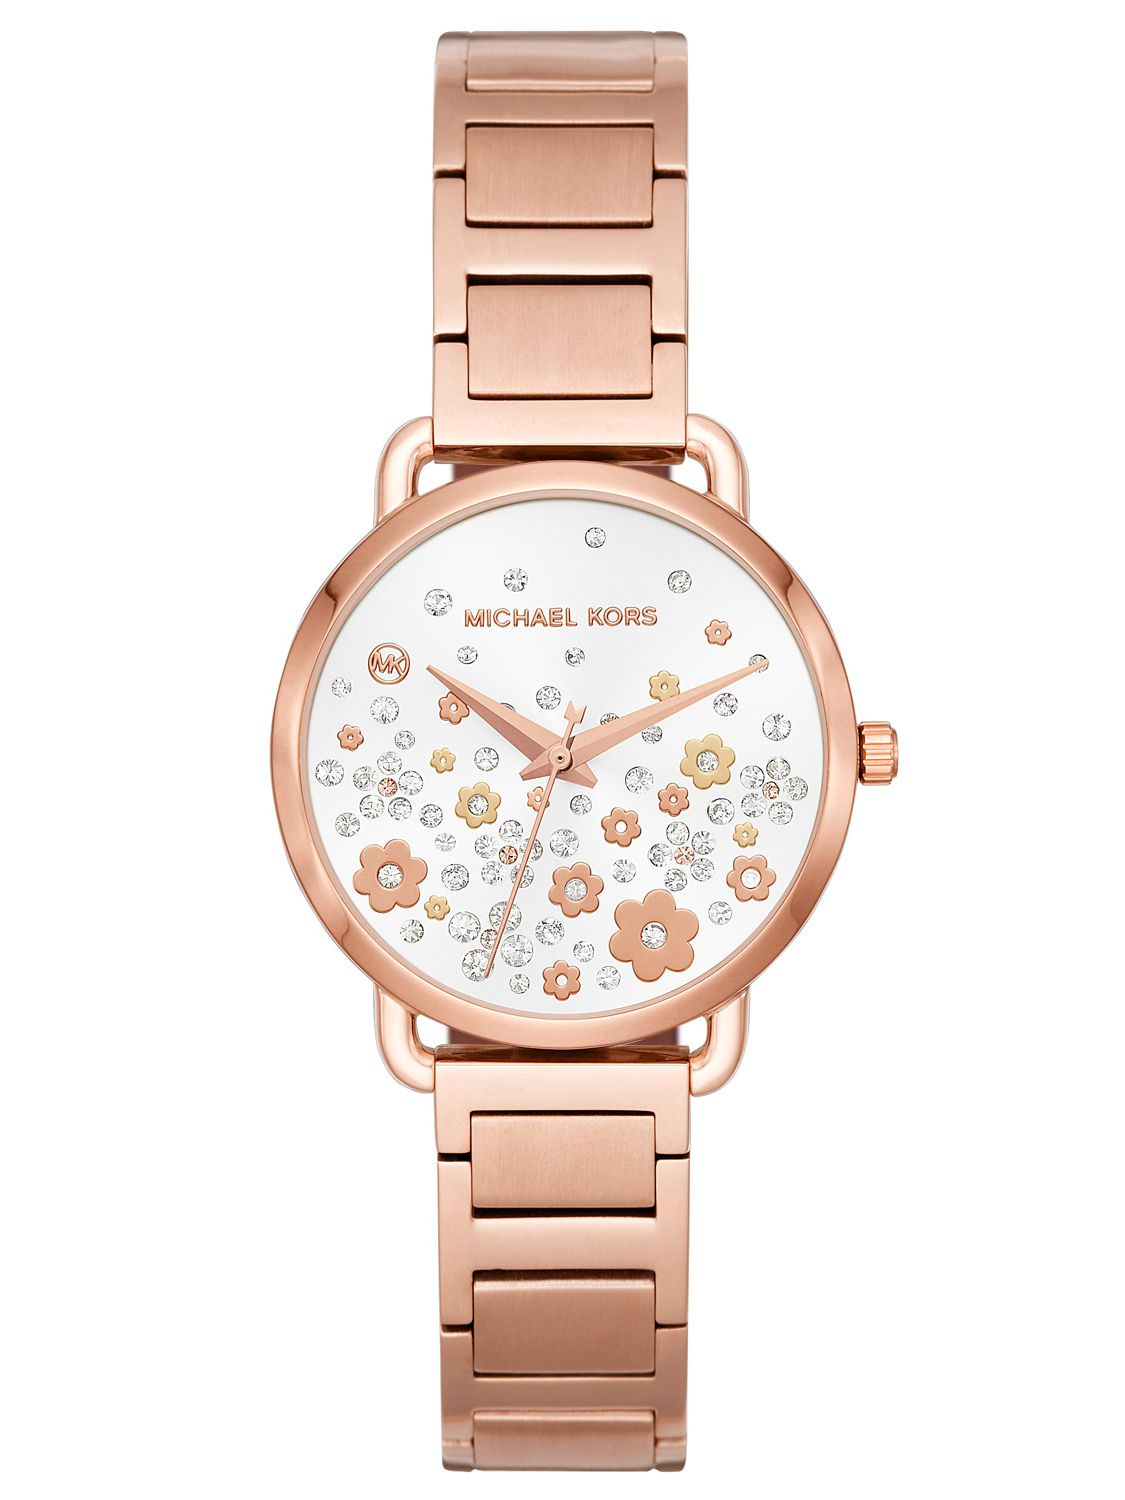 MICHAEL KORS Ladies Watch Portia MK3841 • uhrcenter dea6a00a5561